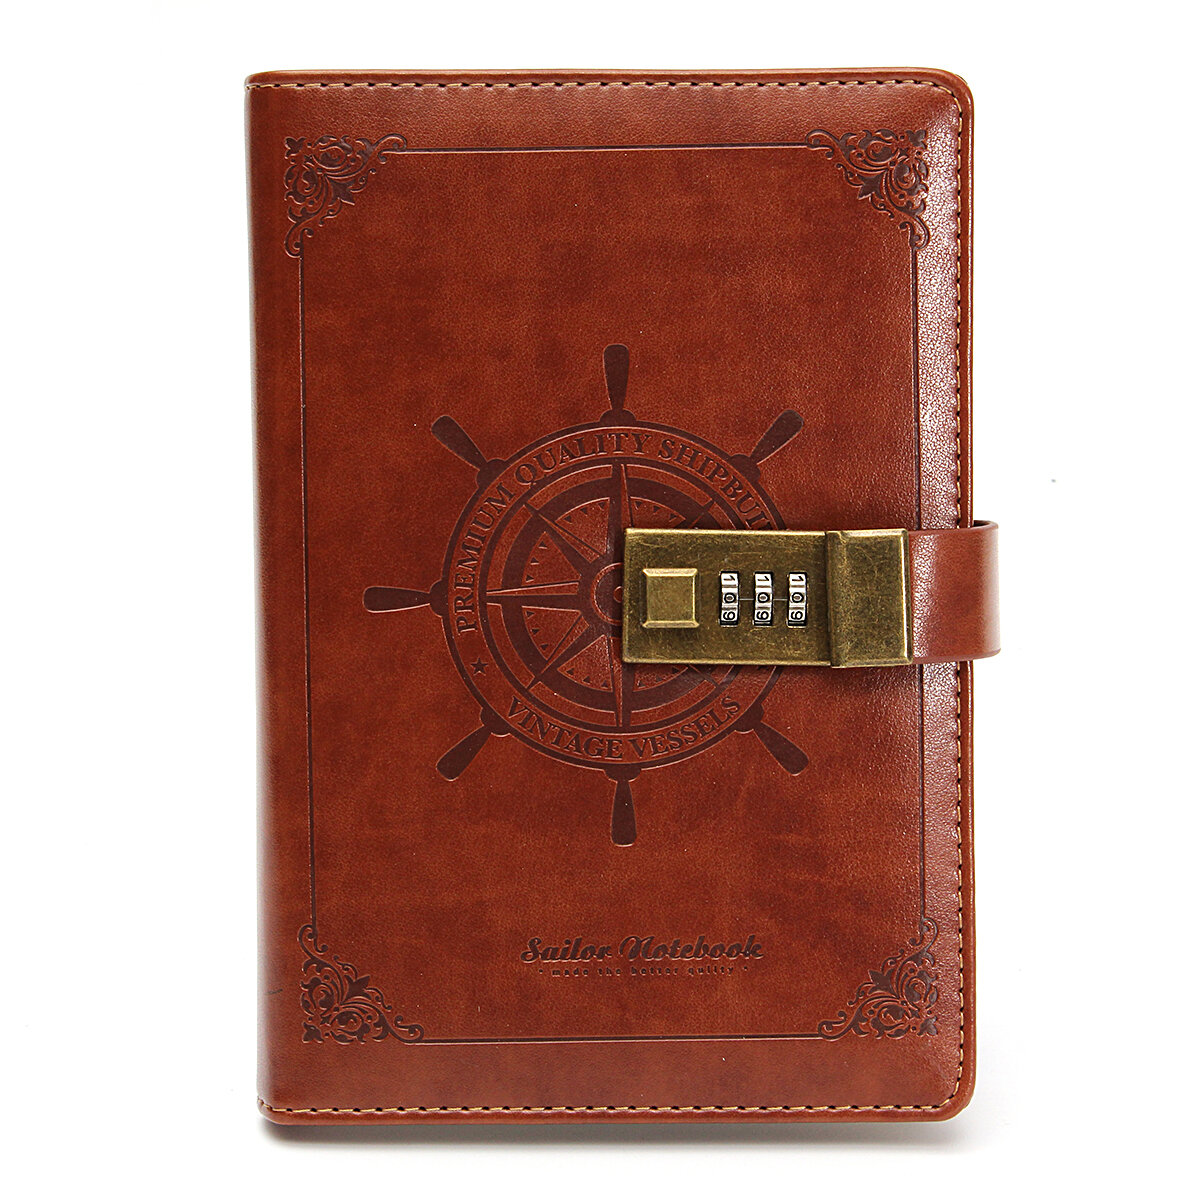 B6 Notebook Vintage Notepad Diary Daily Memos Planner Agenda Notebook PU Leather Sketchbook with Lock Password Office Sc